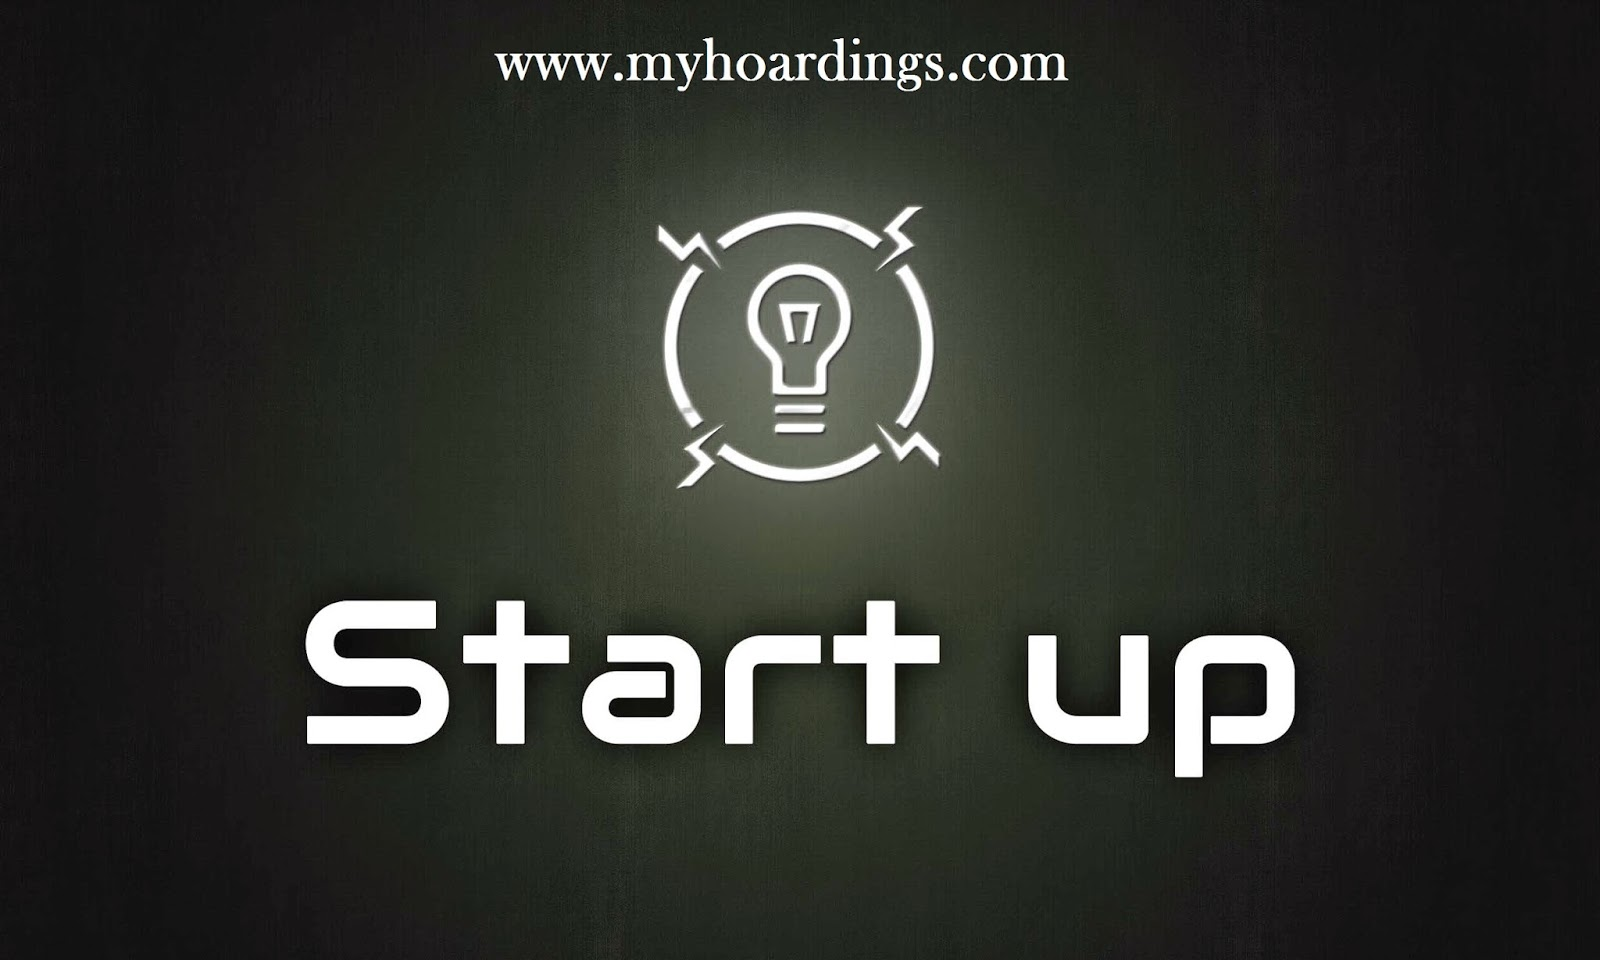 Start Up company in India, Invest in growing start-Ups in India,Venture capitalist